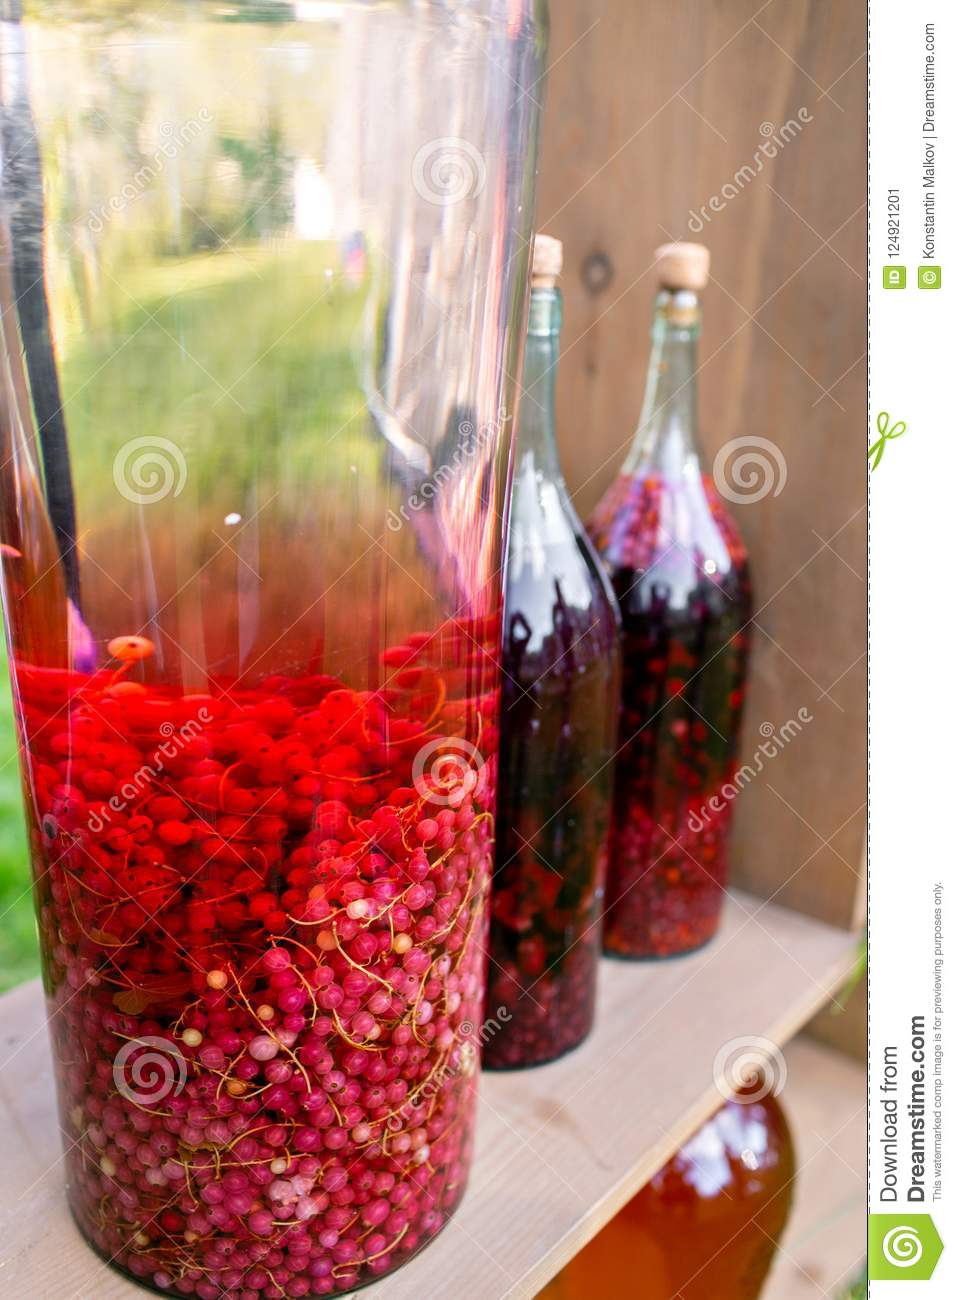 Tincture bottles of lemon, currant, berries and rowanberries. Herbal medicine. Spirits, wine and liqueur